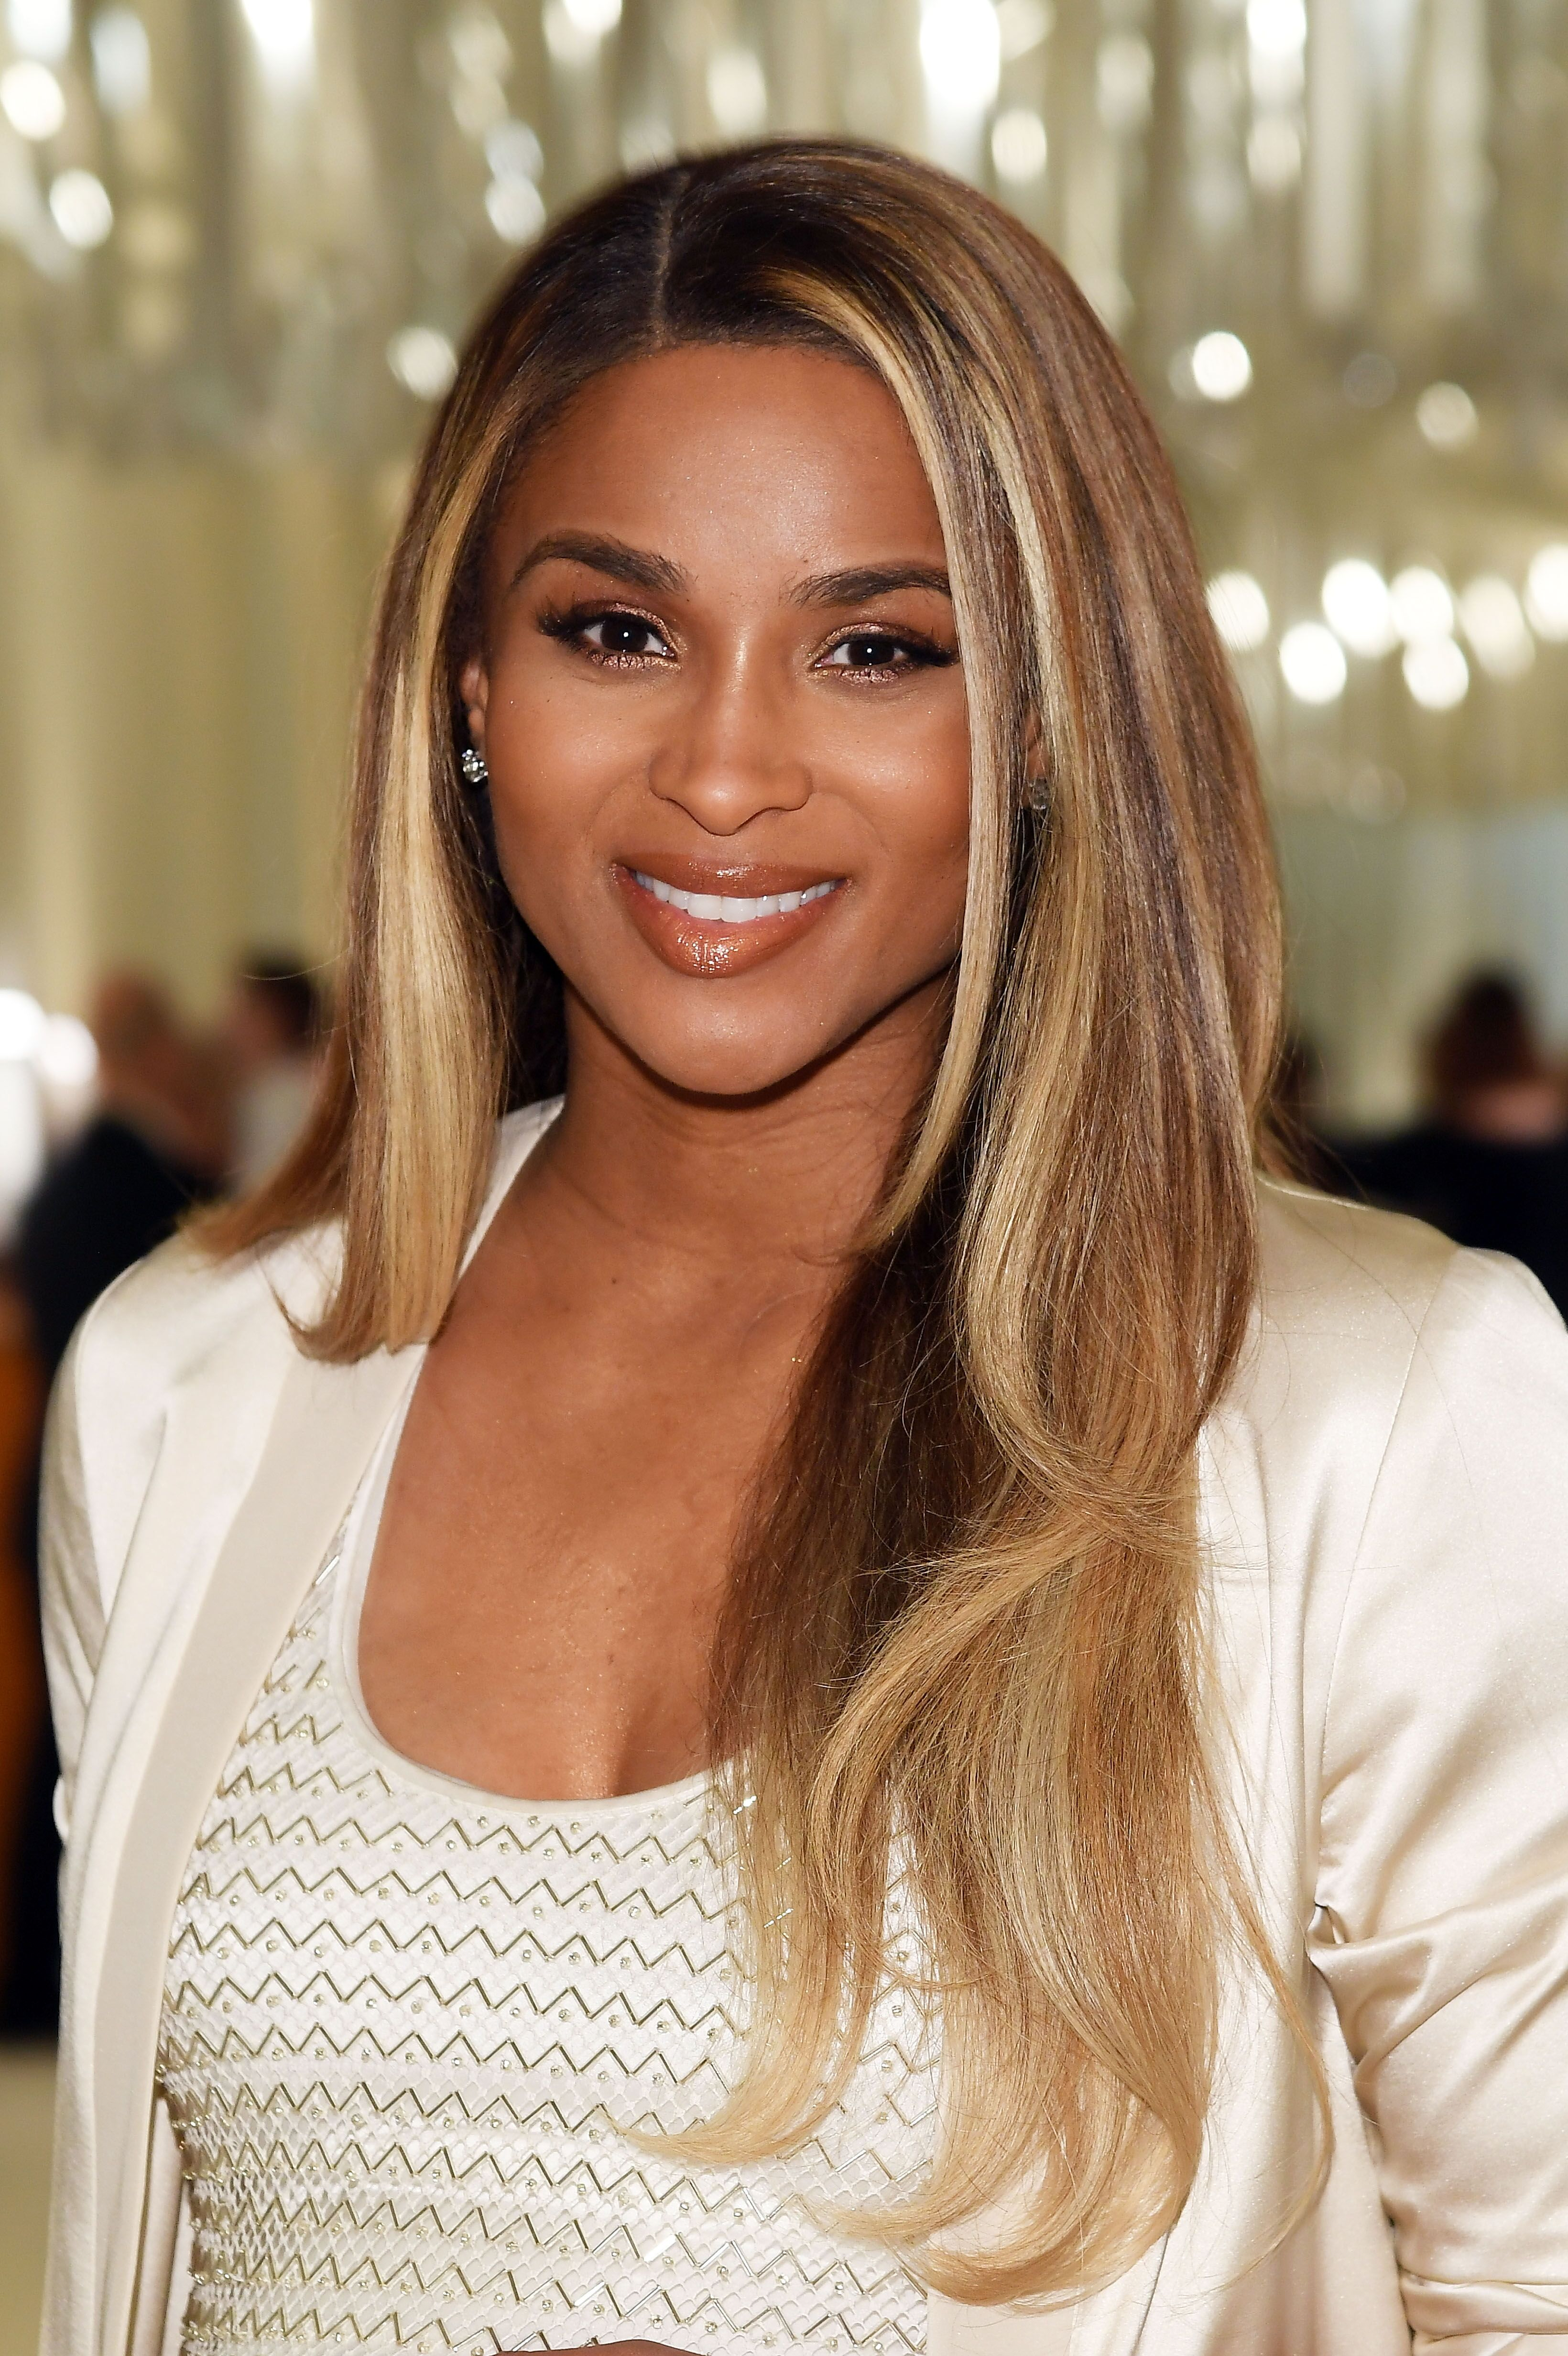 Singer Ciara attends Bulgari at the 25th Annual Elton John AIDS Foundation's Oscar Viewing Party at on February 26, 2017 | Photo: Getty Images